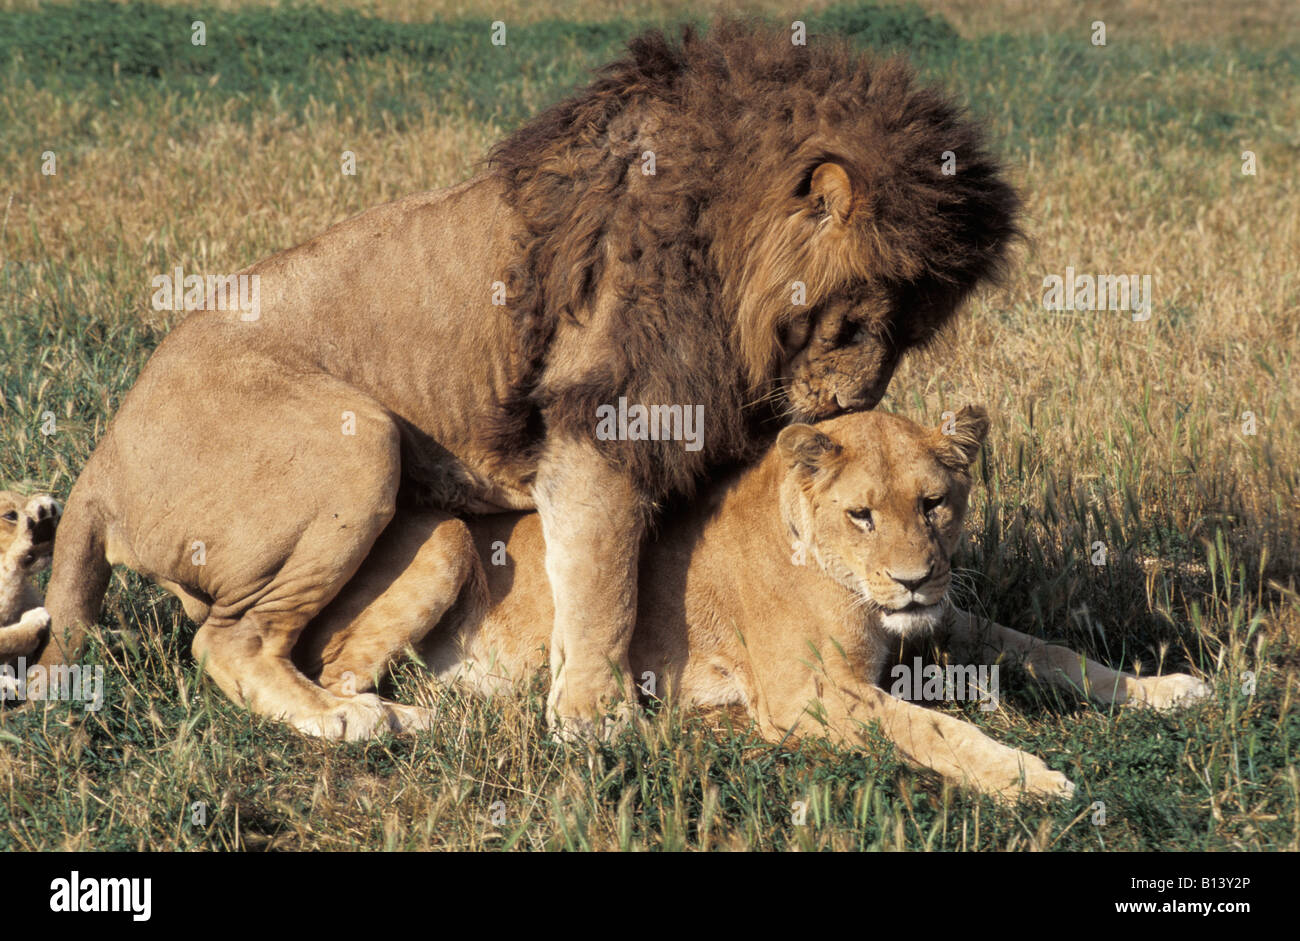 African Lions Pair Mating South Africa Panthera Leo Adult Africa Stock Photo 17912126 - Alamy-2430